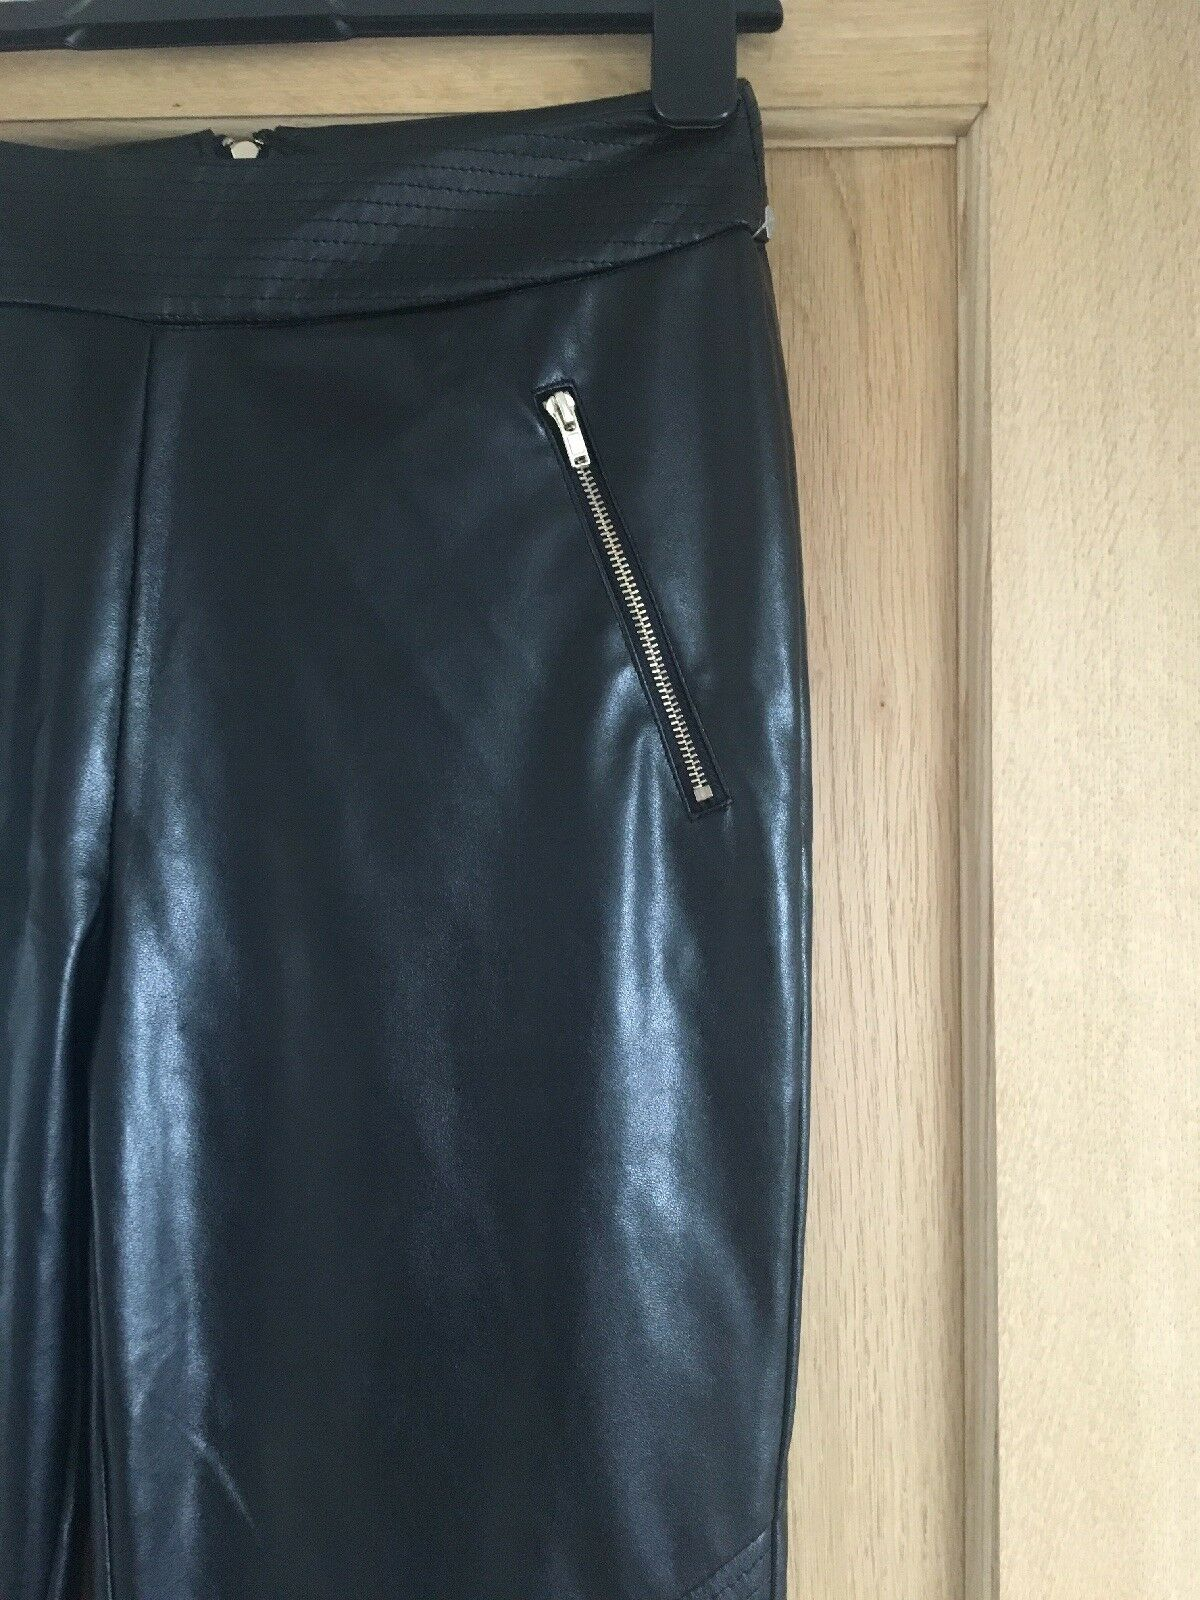 90a30e3d296651 MISSGUIDED Faux Leather Leggings. Size 8 PVC ndwqcp13444-Leggings ...